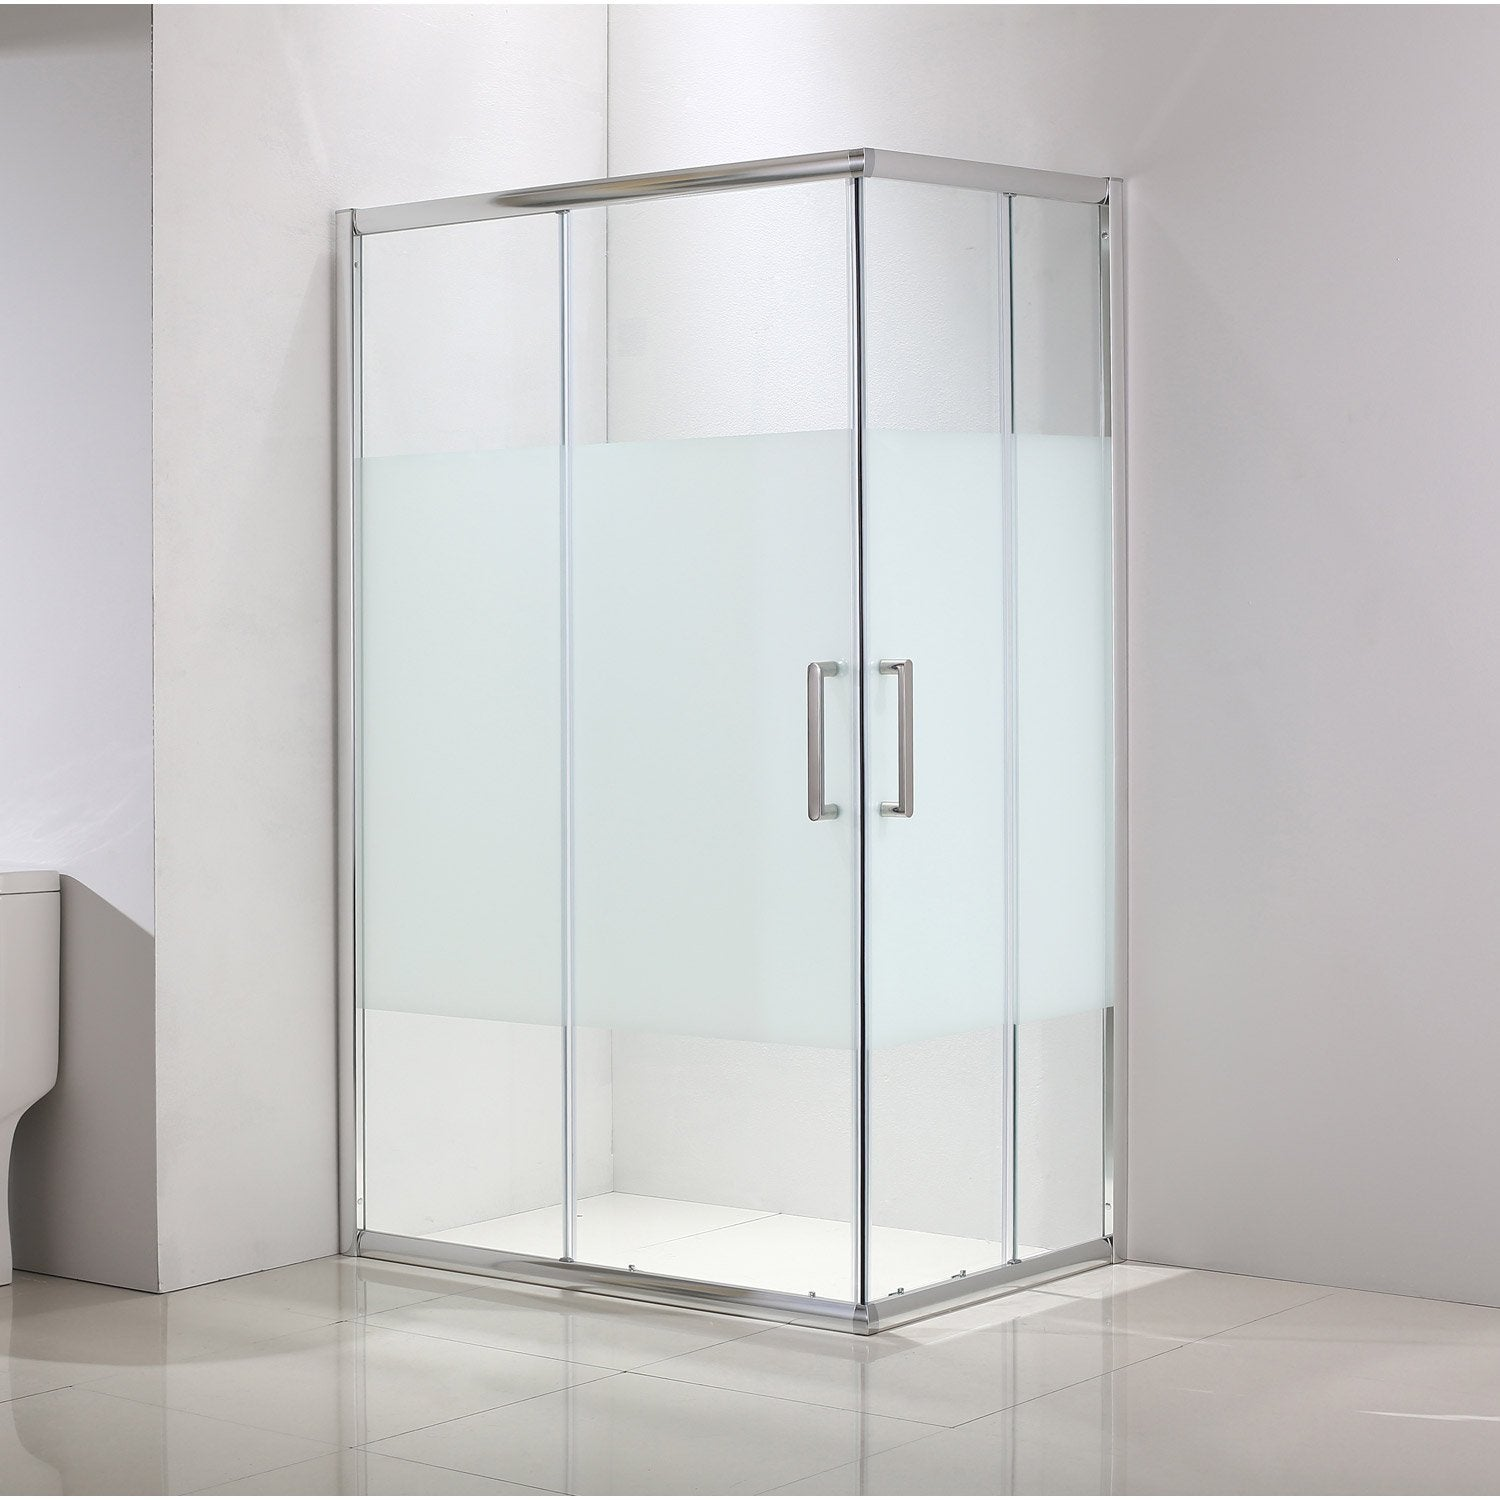 Porte de douche coulissante angle rectangle x for Portes de douche